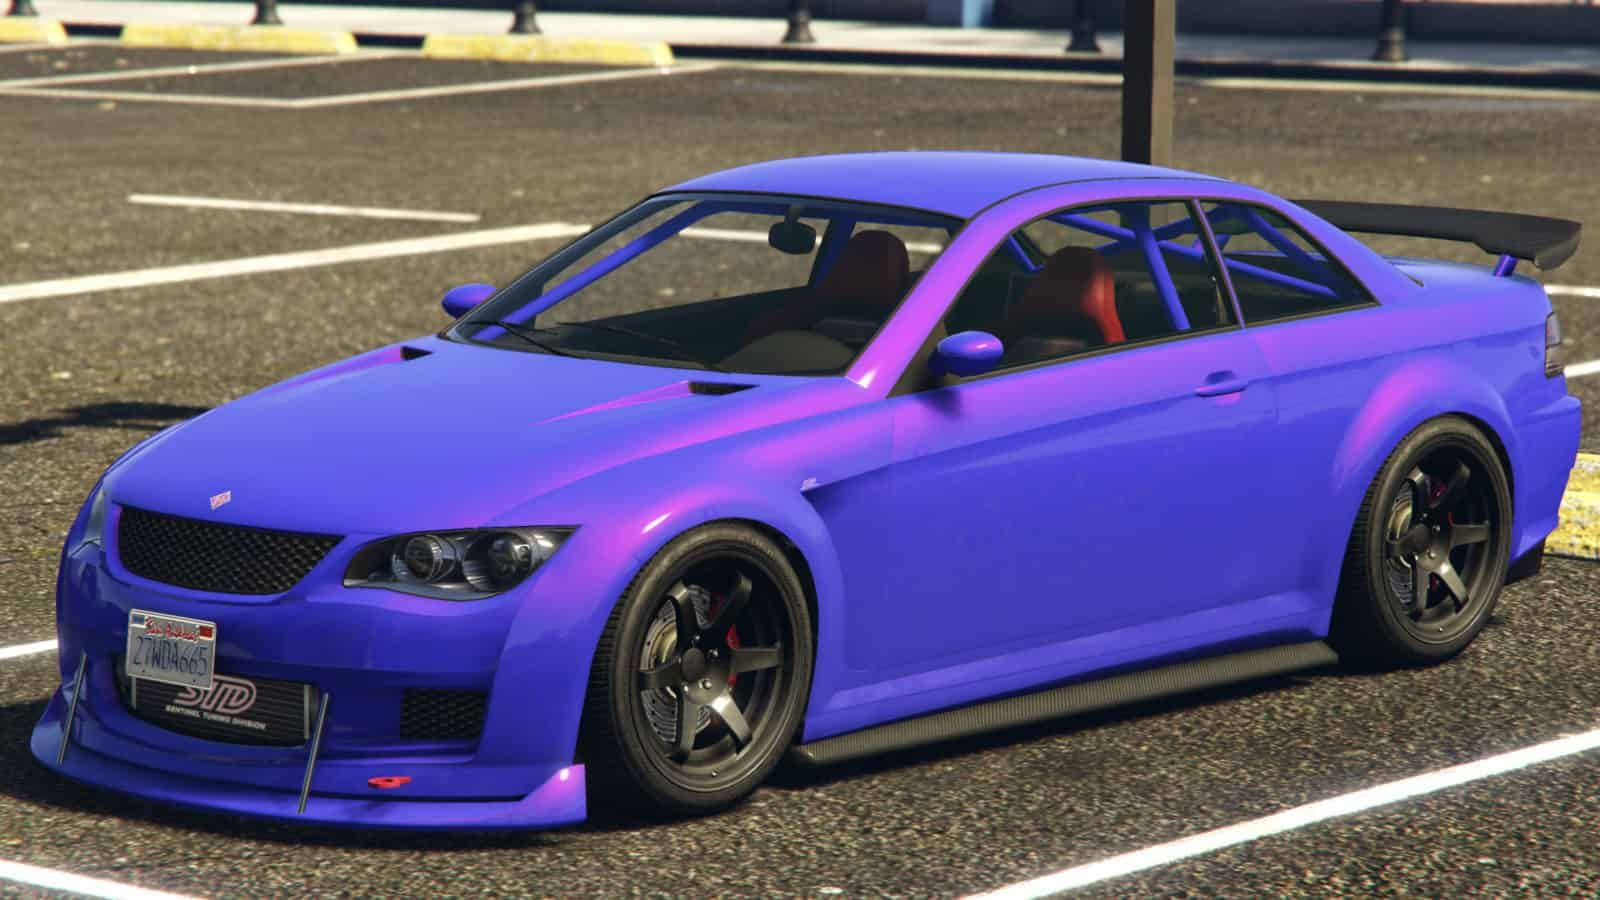 Gta Online Car Locations Guide Find Rare Cars More Gta Boom In 2020 Gta Cars Gta Online Cars